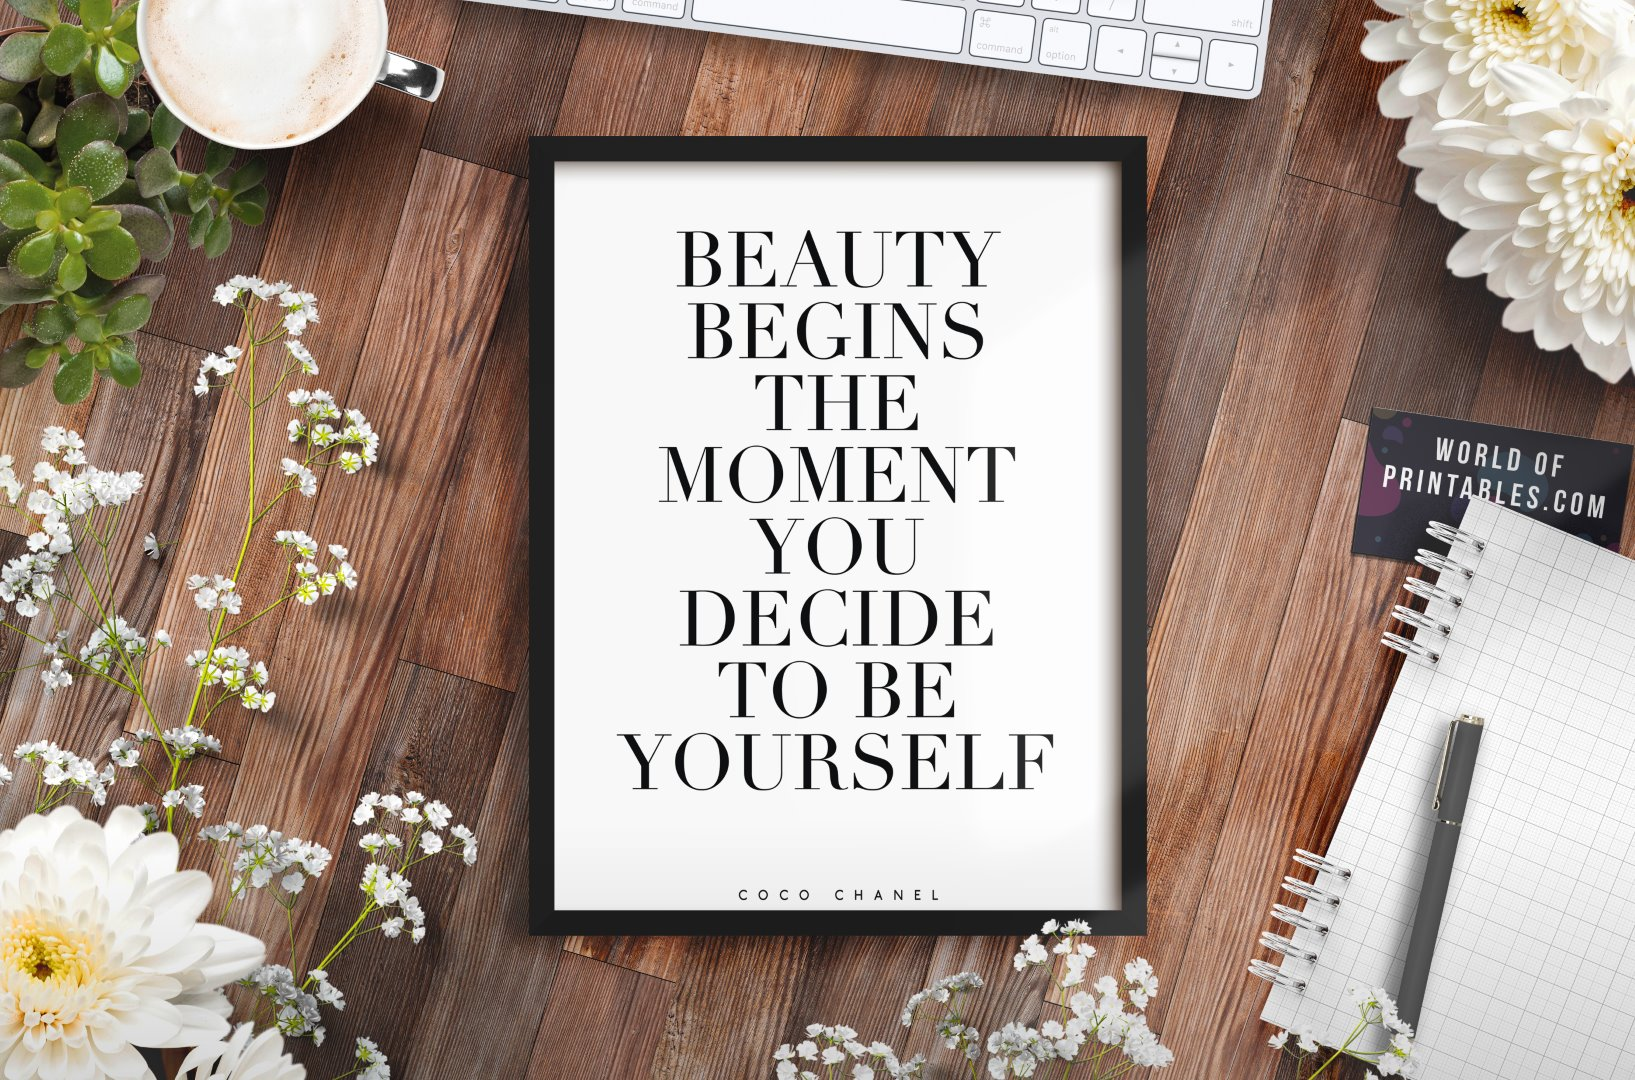 beauty begins the moment you decide to be yourself mockup 2 - Printable Wall Art